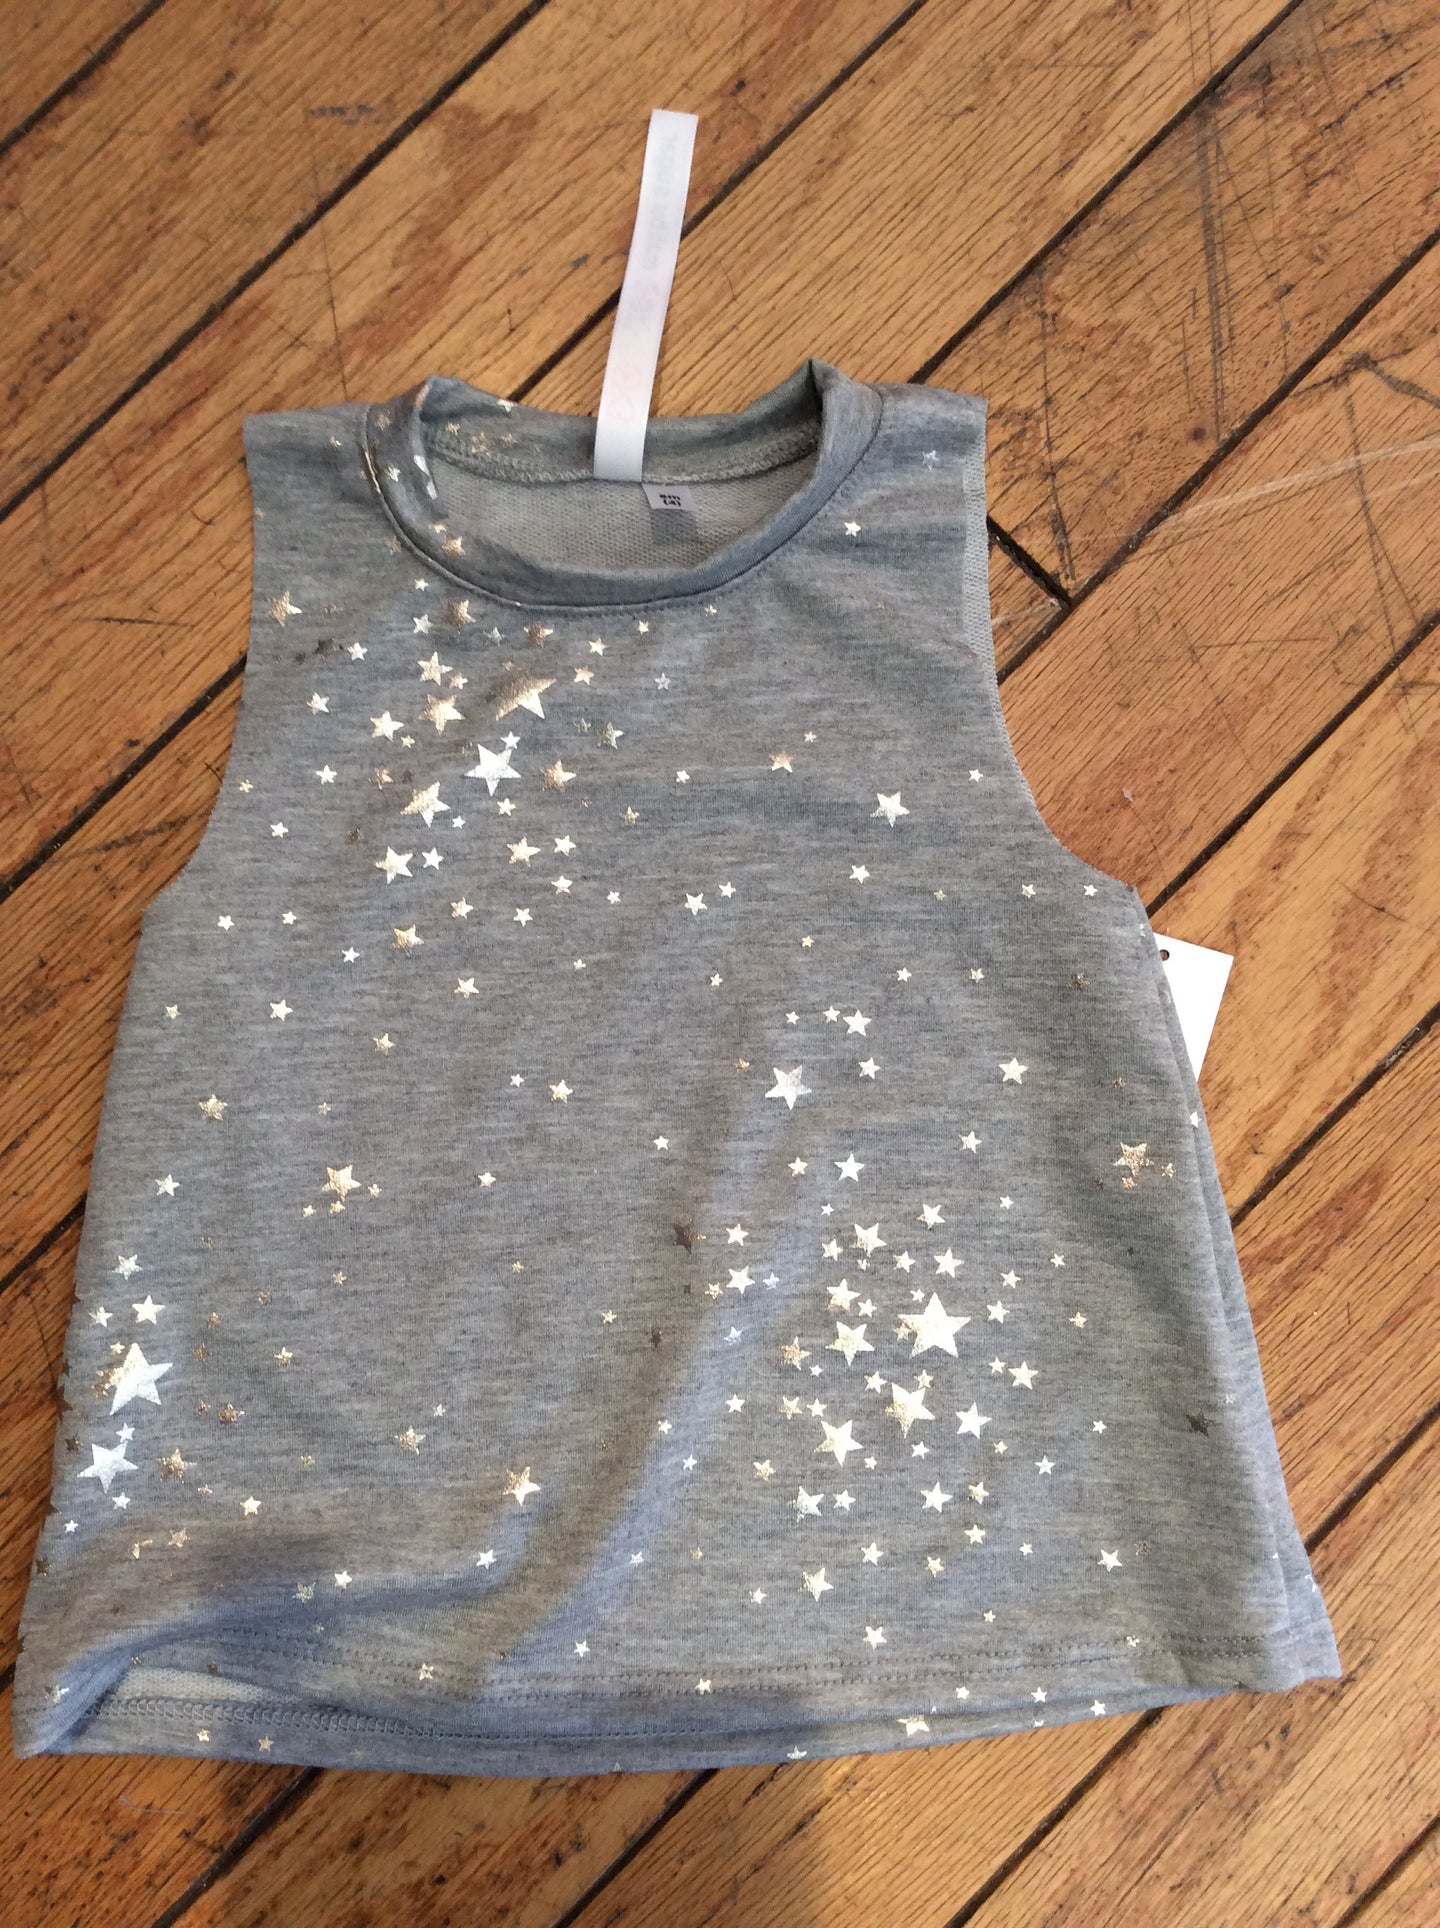 Grey Sleeveless Top with silver stars